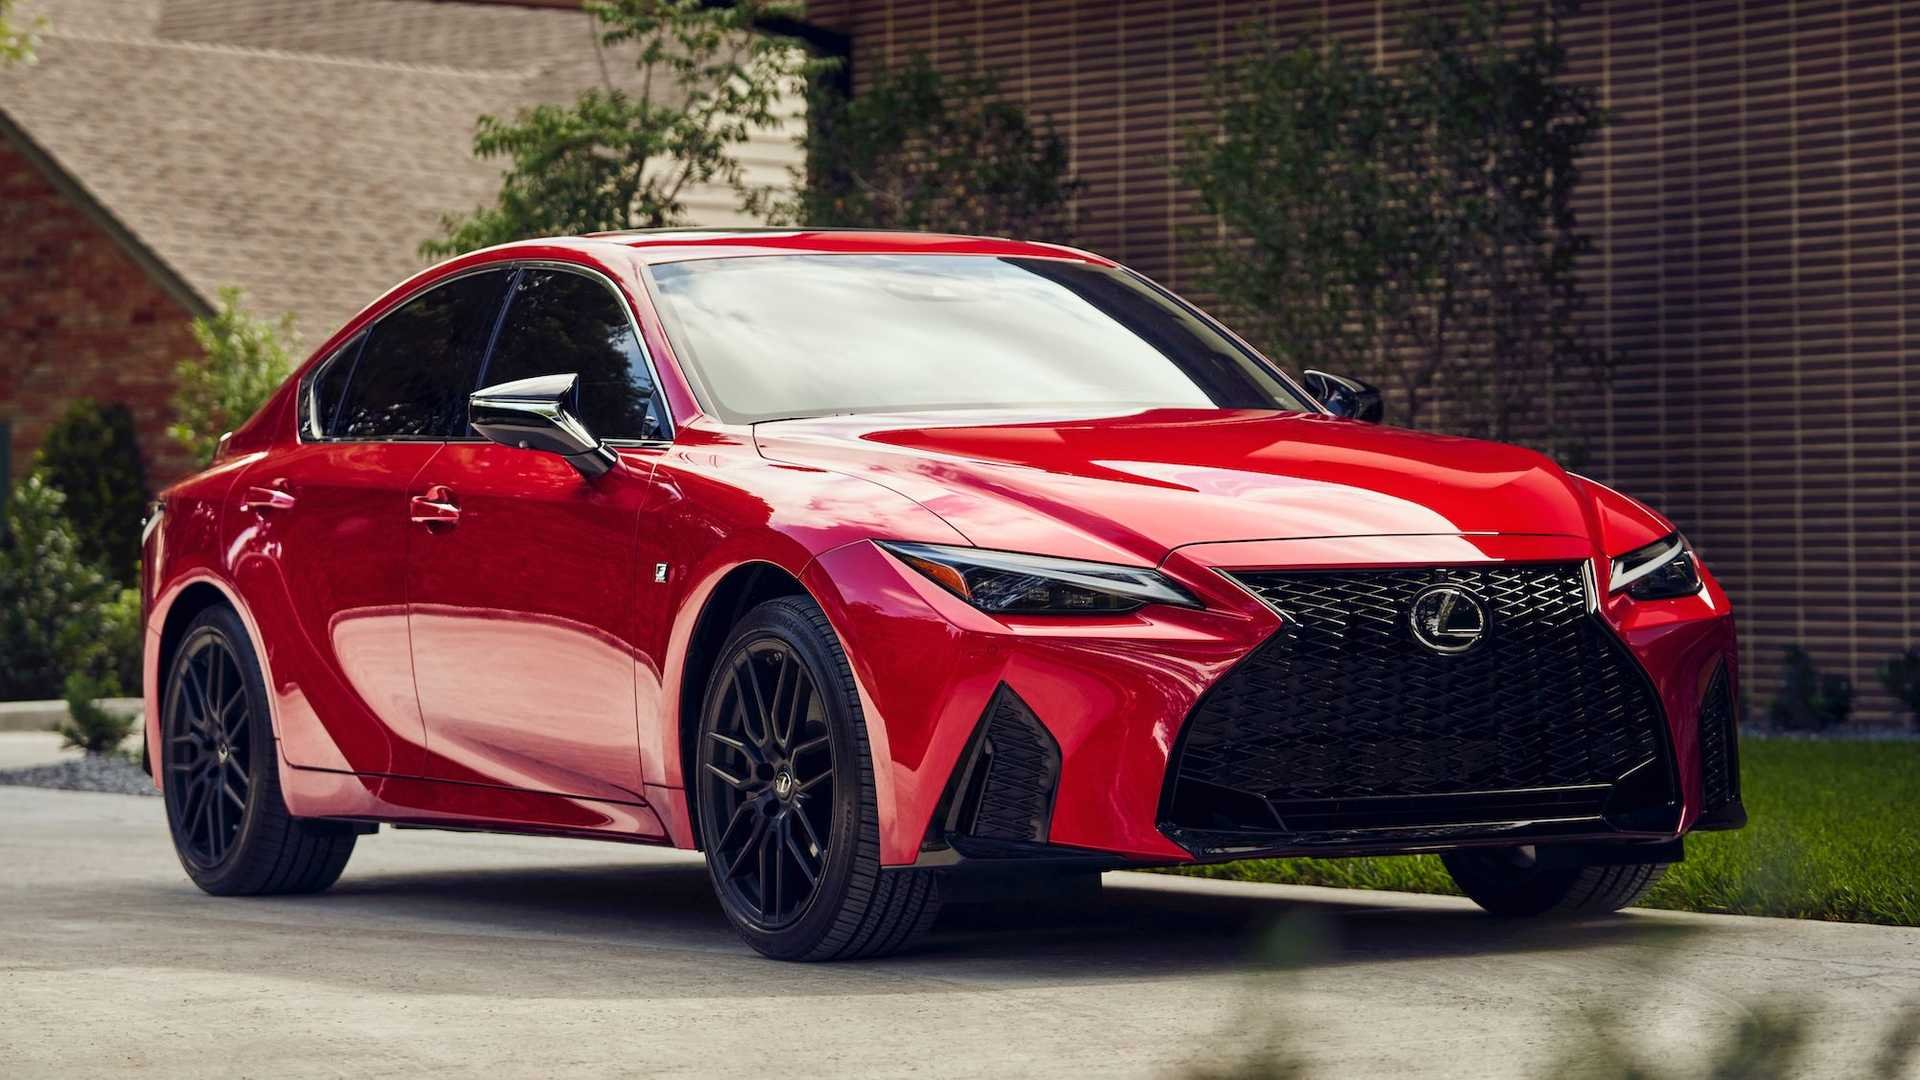 2021 Lexus IS Starts At $39,900, IS 350 F Sport Asks $42,900